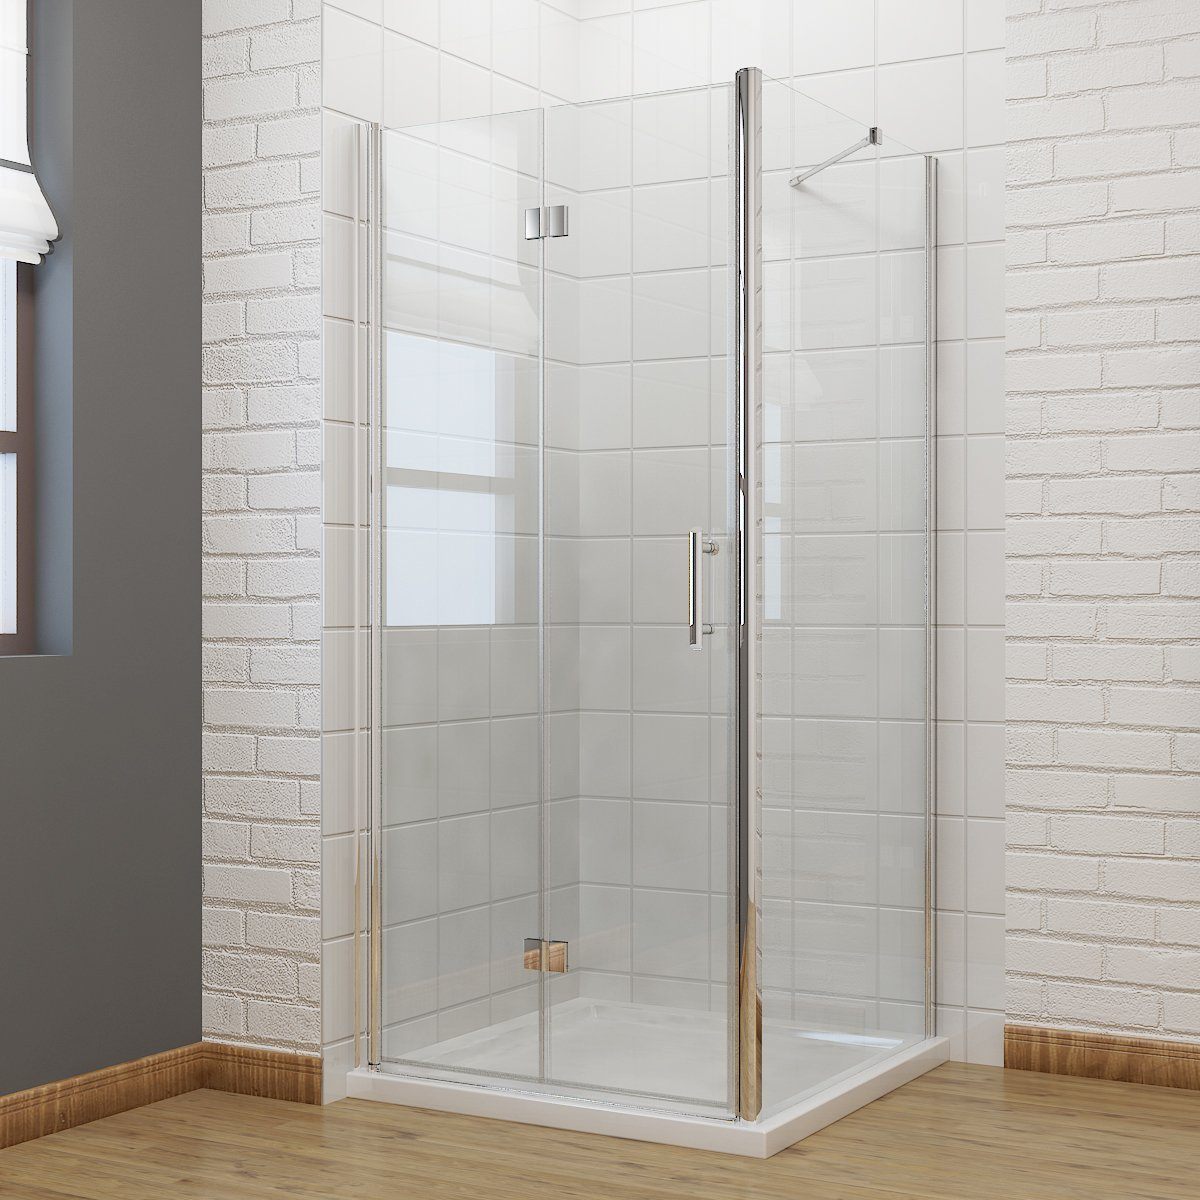 900 x 700 mm Bifold Shower Enclosure Glass Shower Door Reversible ...